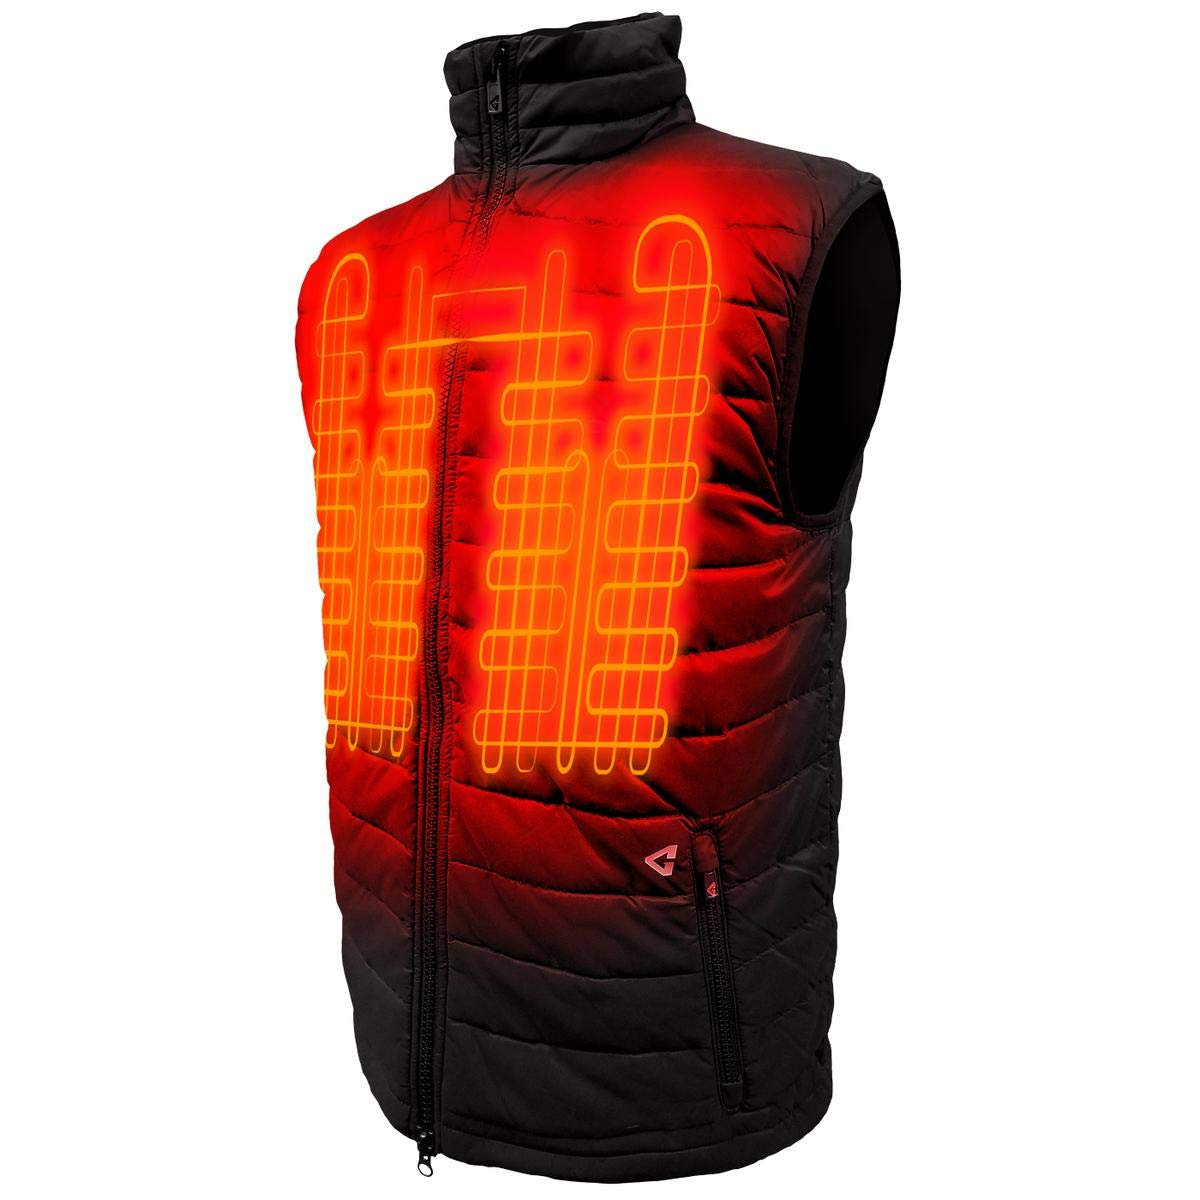 Gerbing Gyde 7V Khione Heated Vest for Men – Water Resistant Electric Puffer Vest for Winter Hiking Camping Motorcycle Riding– Sleeveless Heated Jacket with Battery Pack